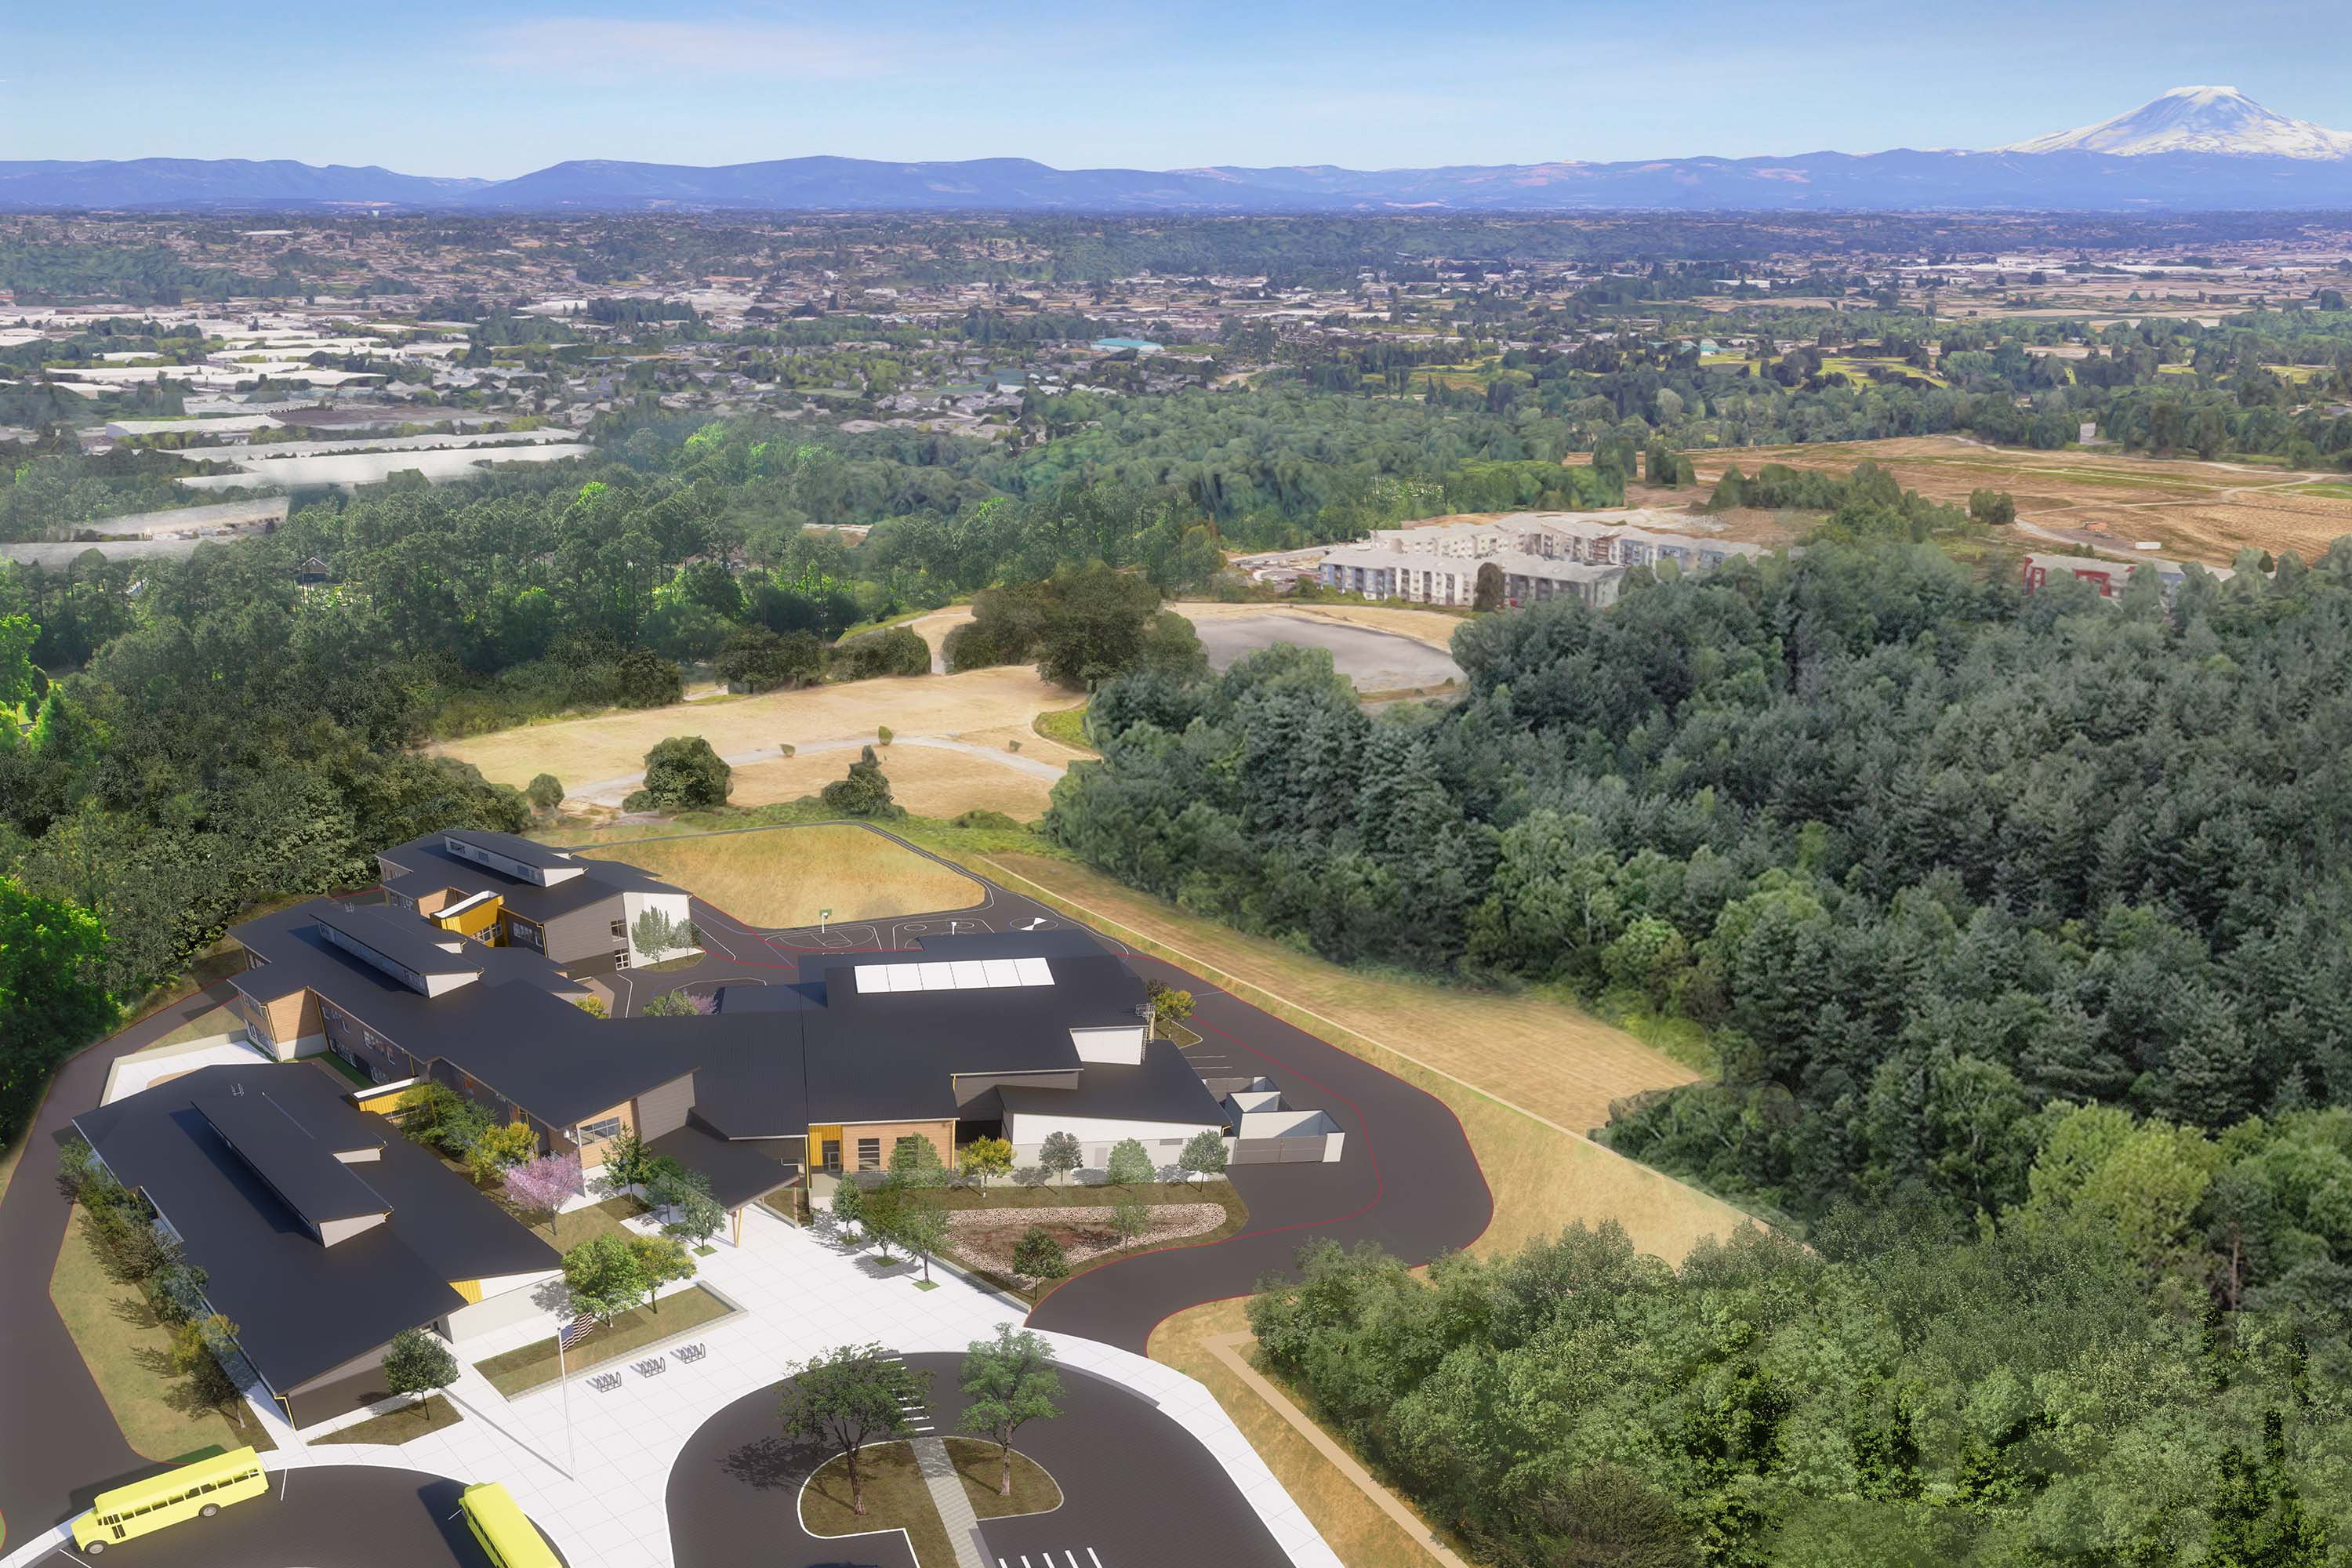 Aerial rendering of the whole campus and Mt. Rainer far off in the background.